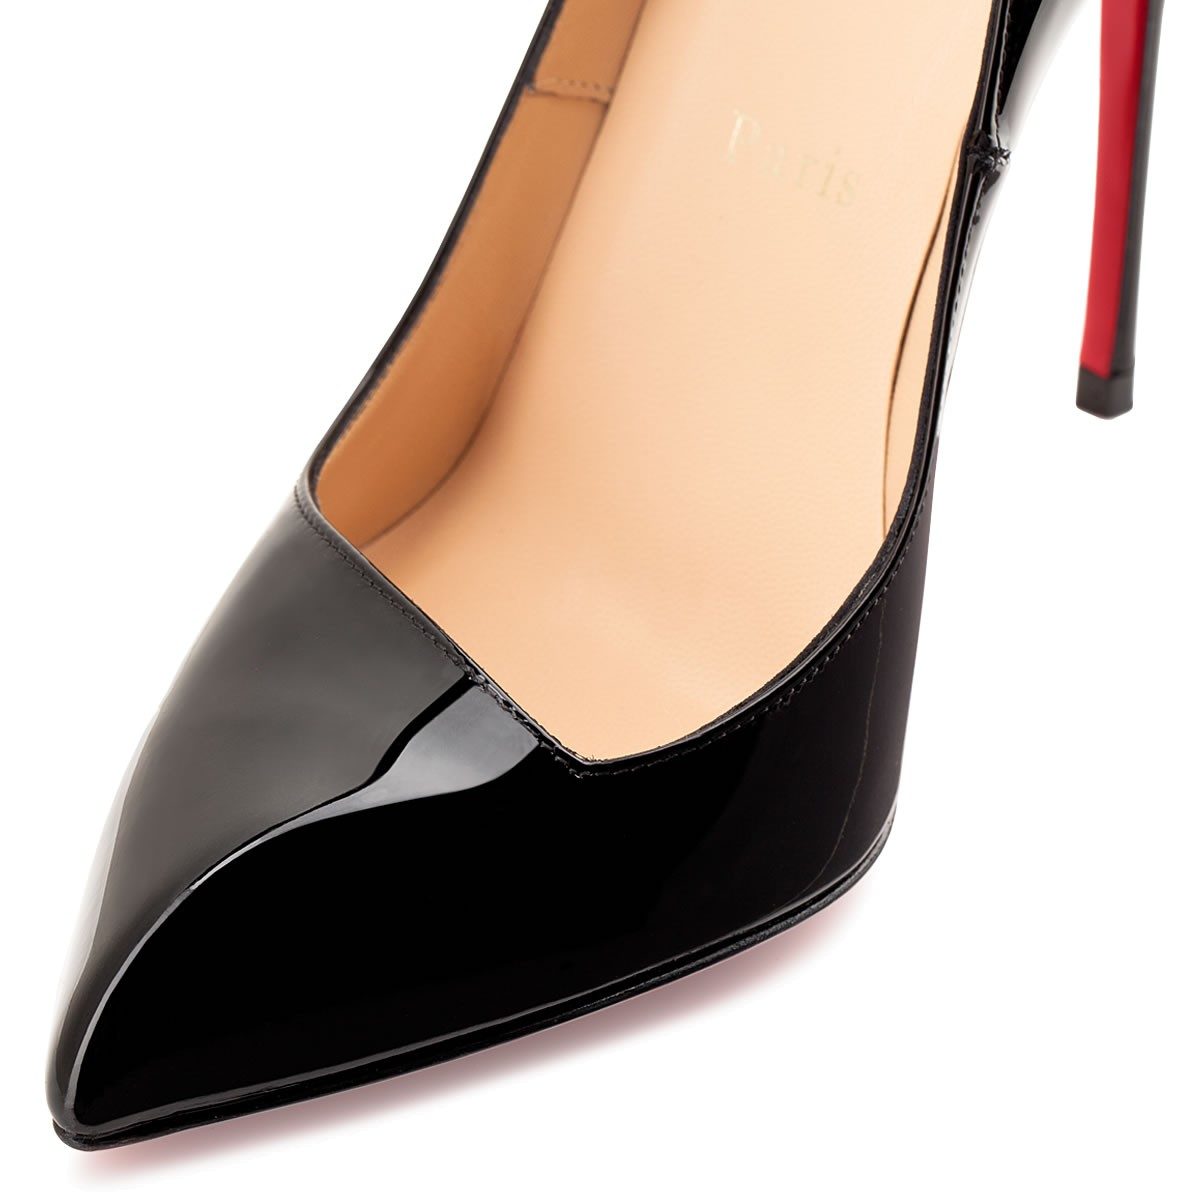 83b7354ebfa Corneille 100mm Black Patent Leather